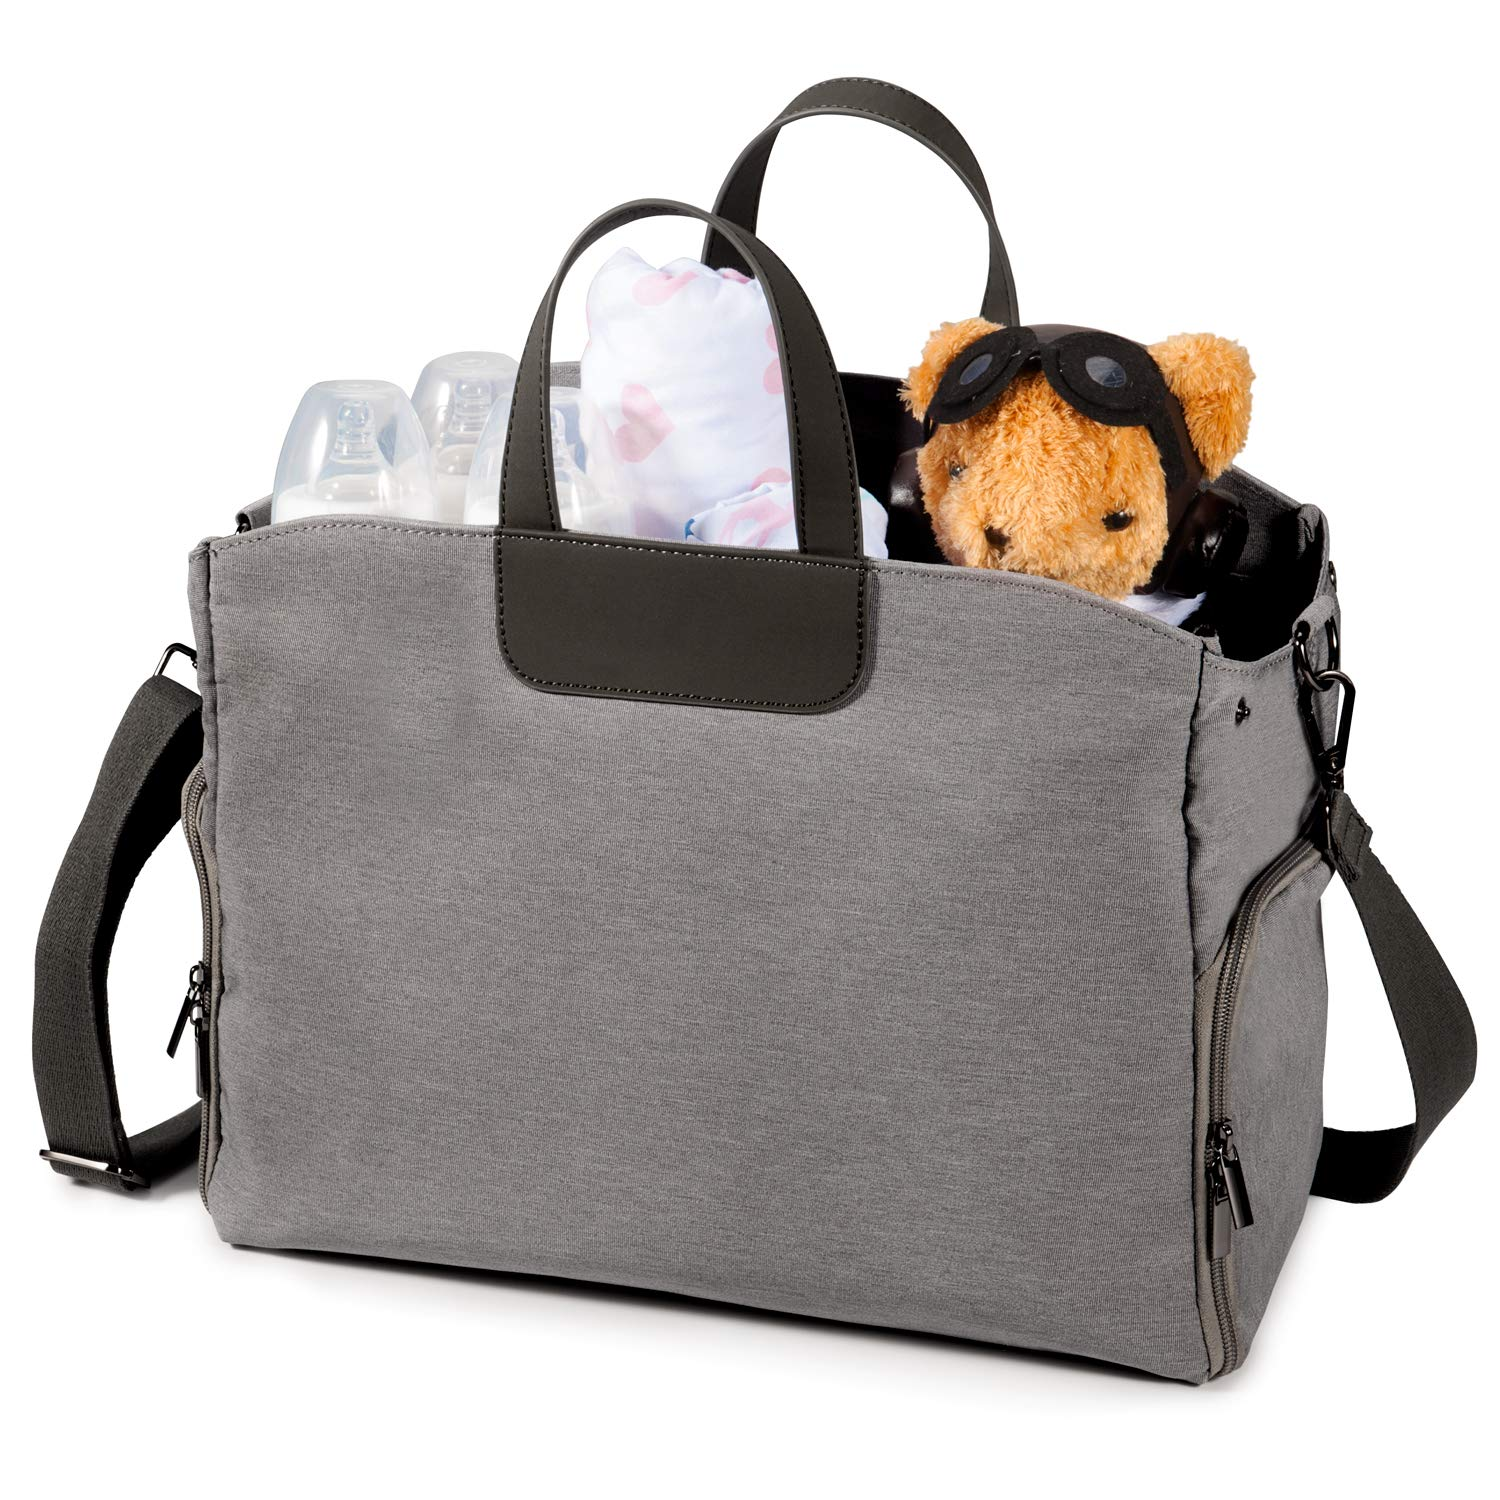 Breast Pump Bag with 3 Cooler Milk Pockets, Lupantte 16L Capacity Tote - Crossbody Travel Bag for Breastfeeding Mom, Side Opening Design, Fit Breast Pump Like Spectra, Medela, Bellababy, etc. (Grey)